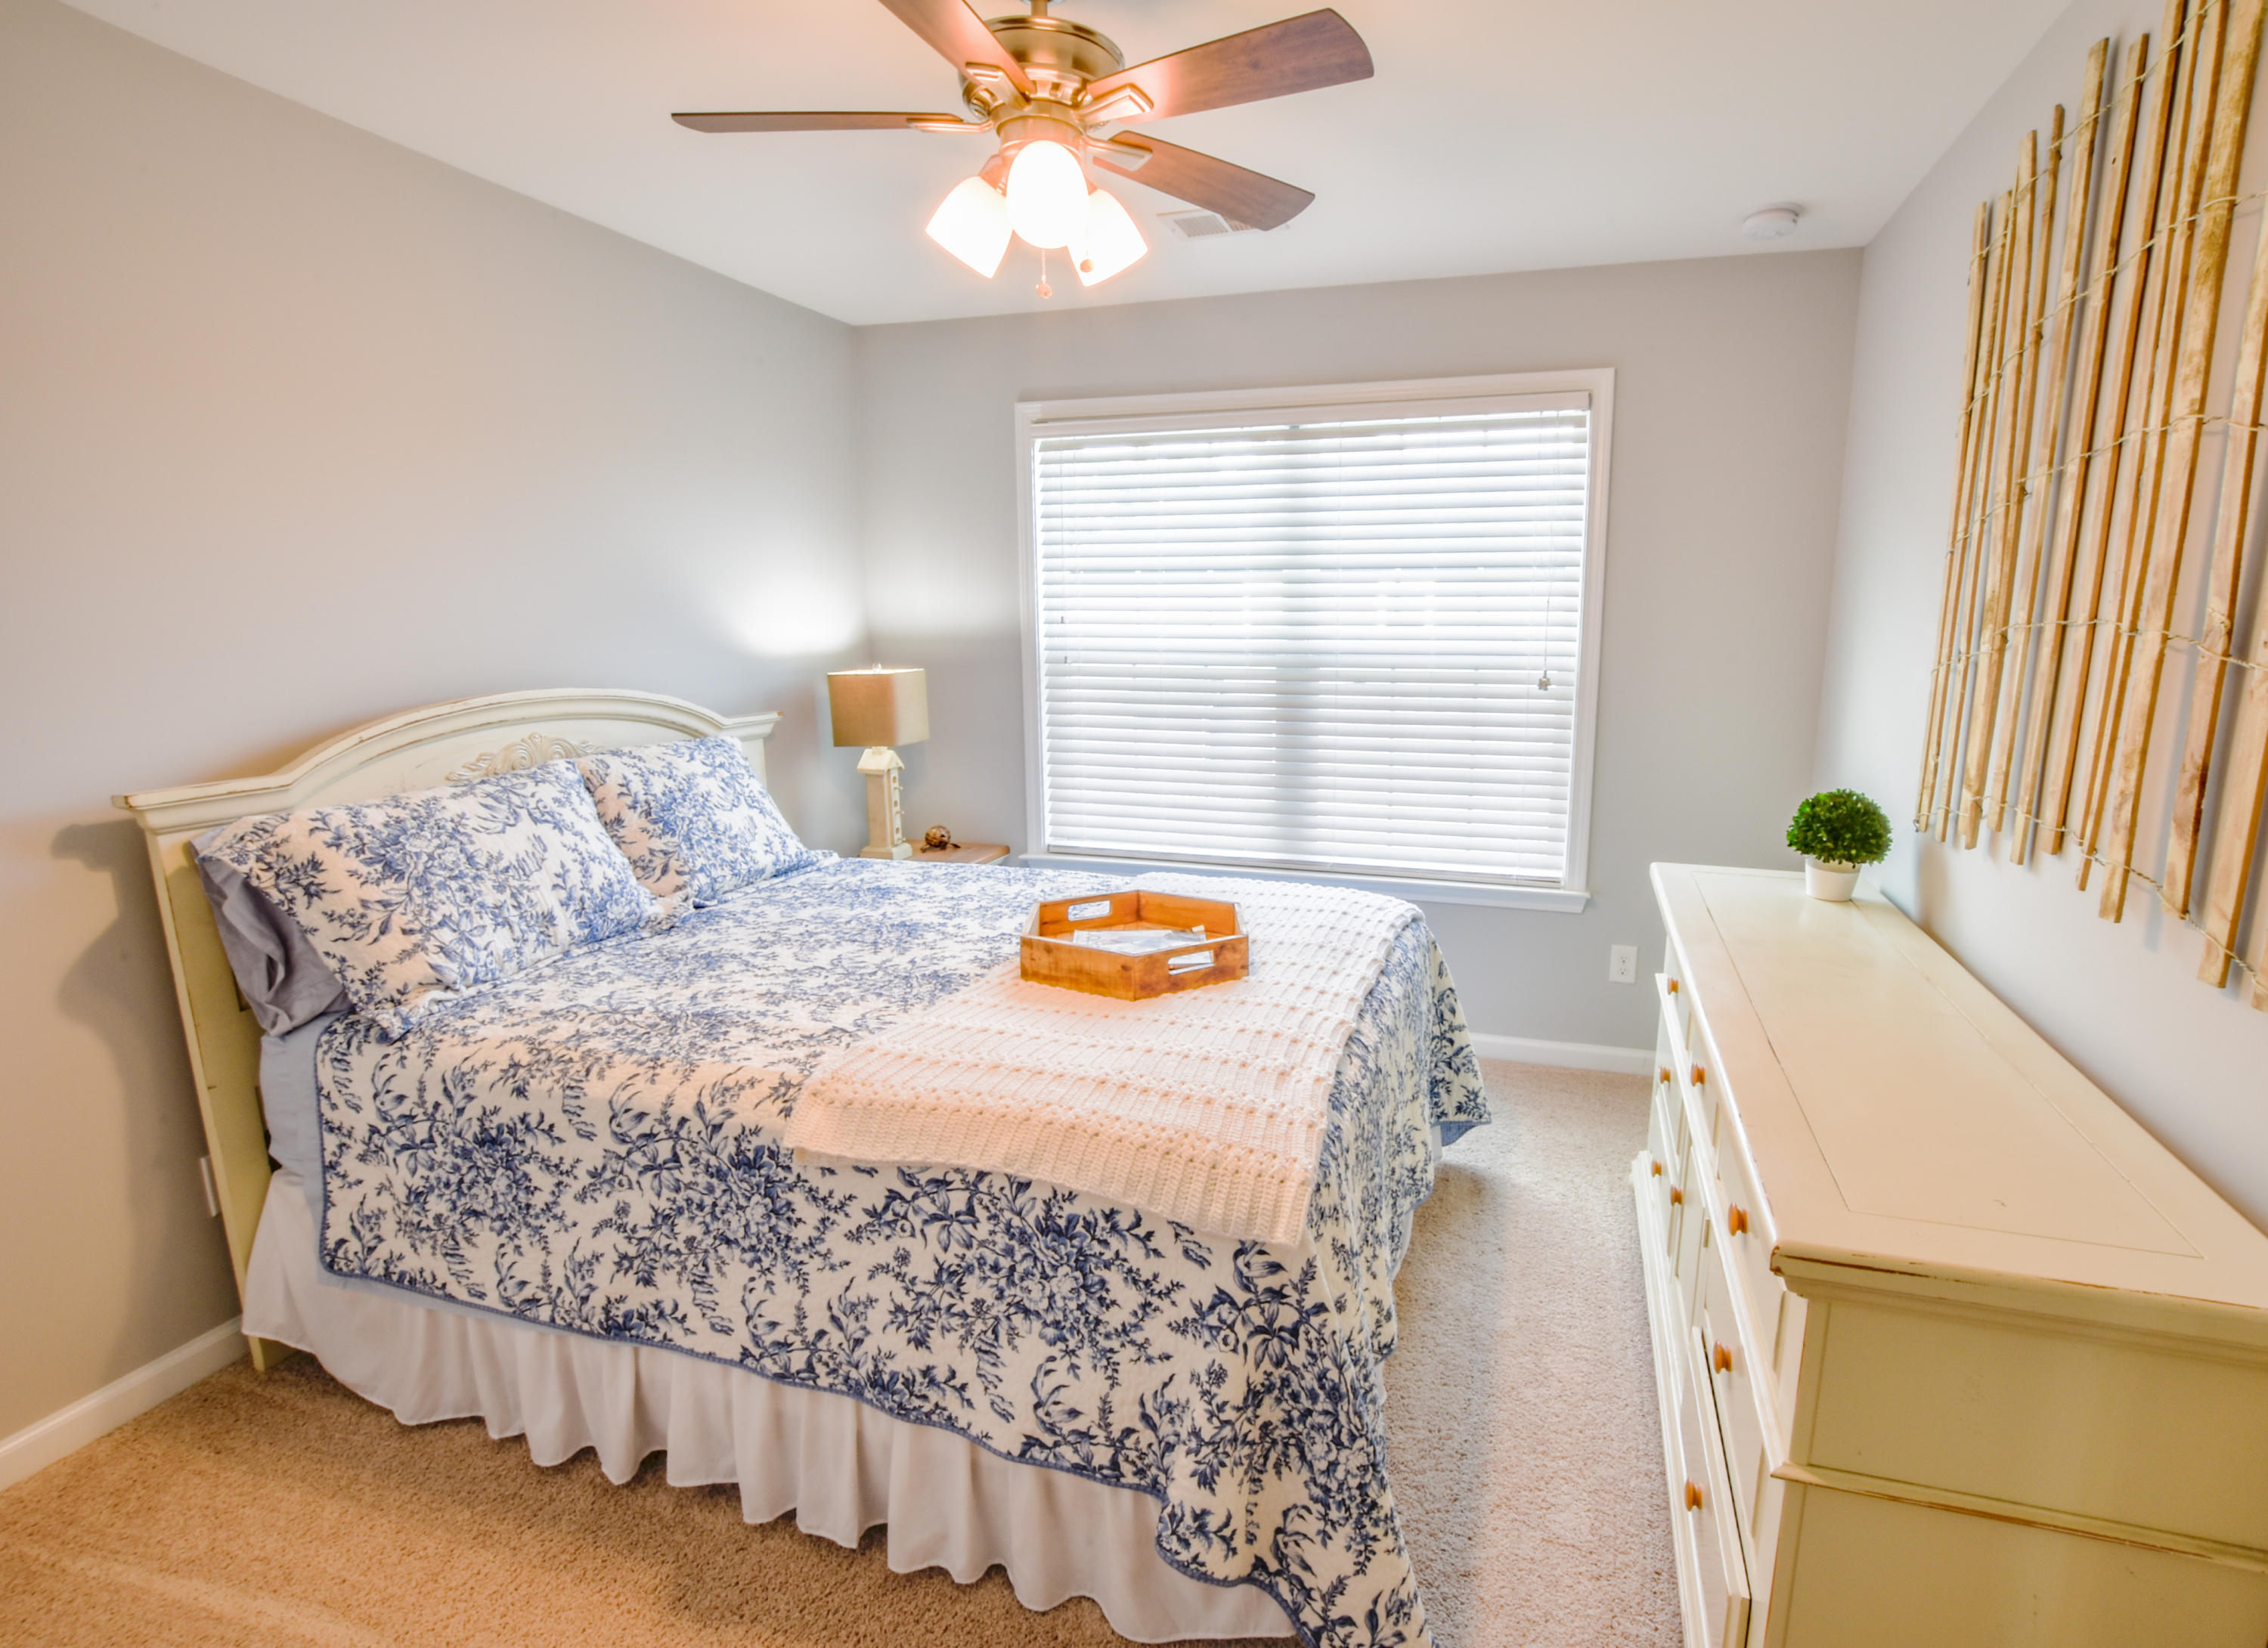 Brownswood Village Homes For Sale - 3334 Tabard, Johns Island, SC - 5